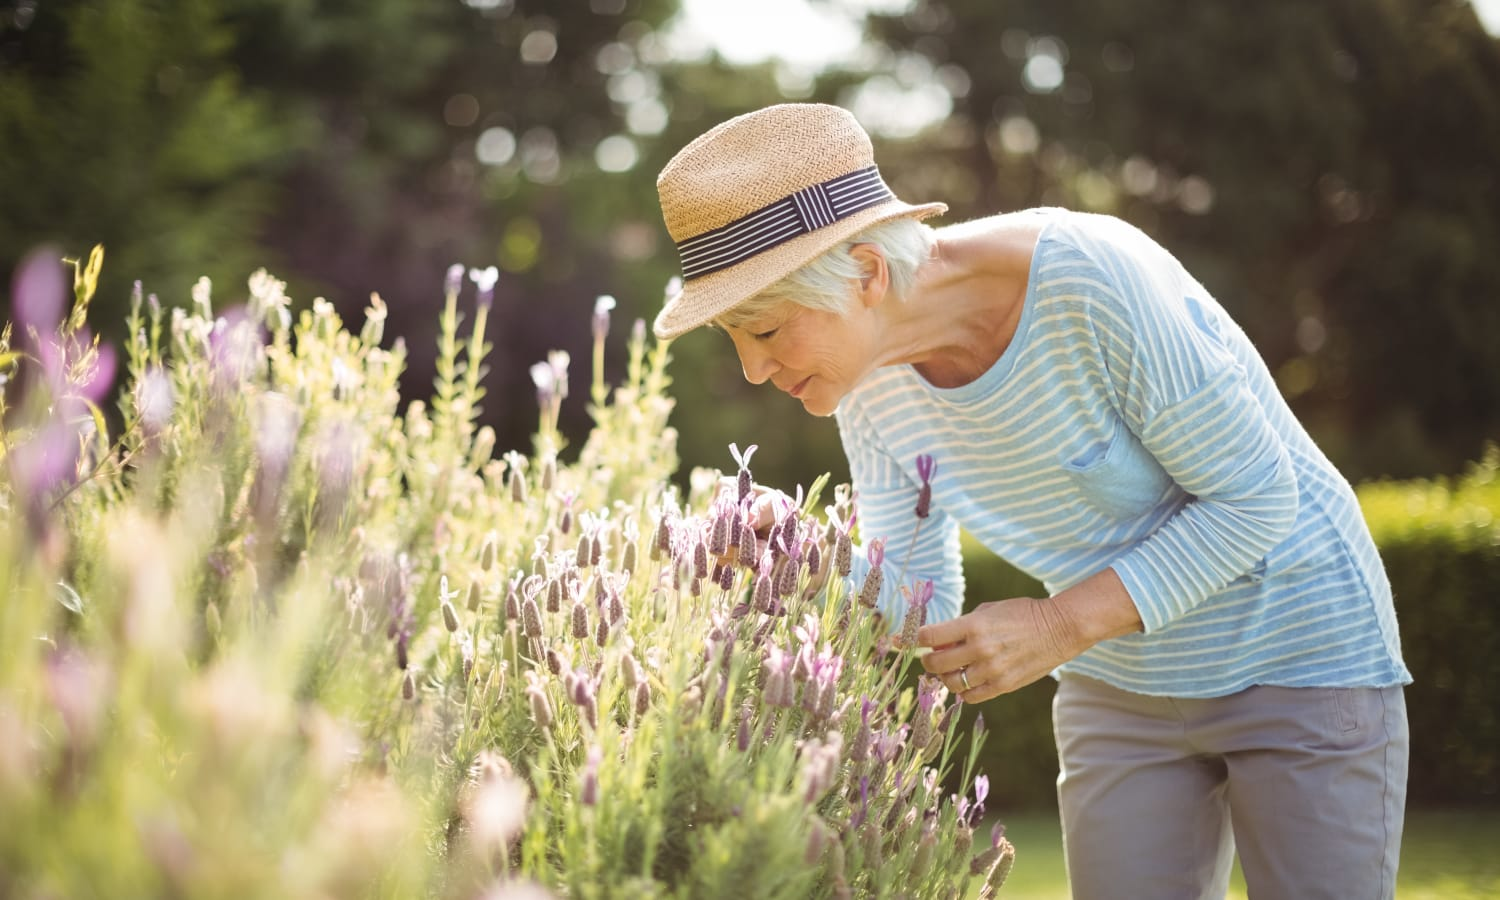 A woman picking lavender near La Conner Retirement Inn in La Conner, Washington